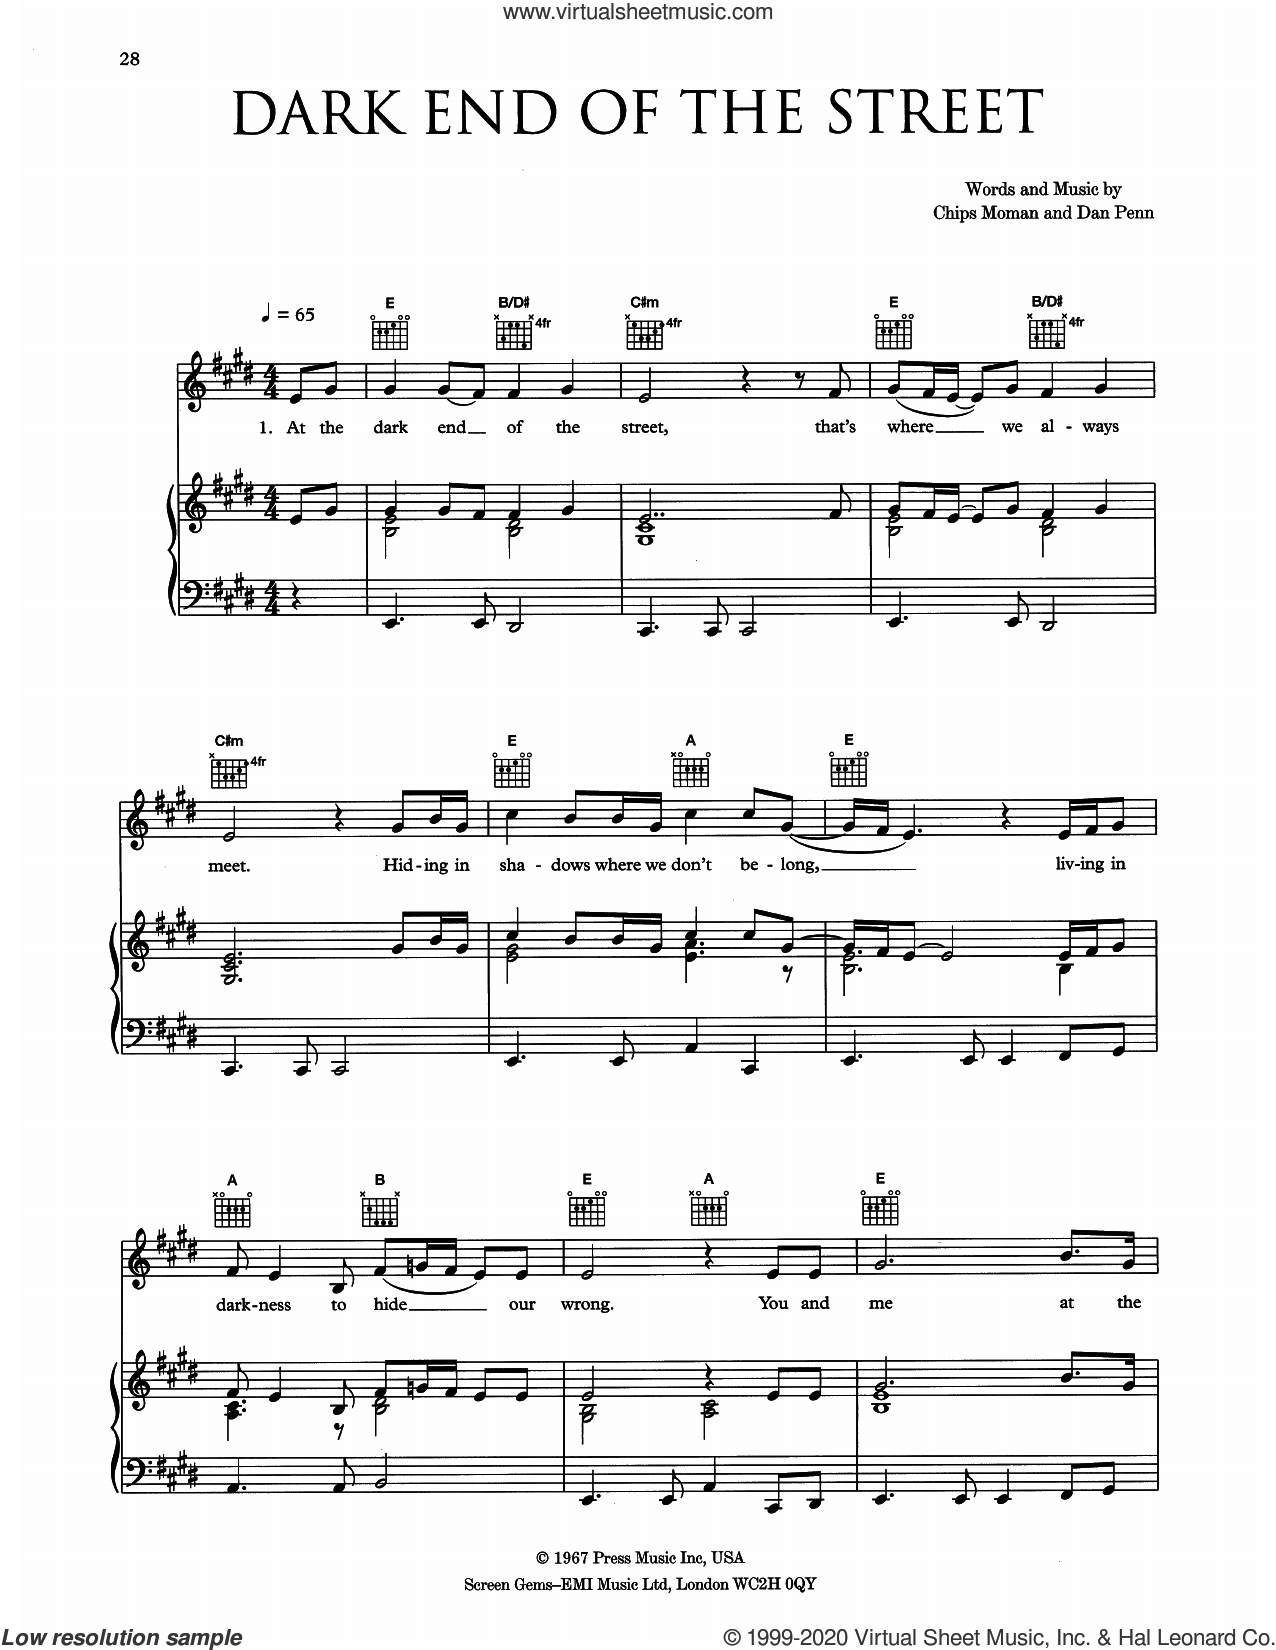 The Dark End Of The Street sheet music for voice, piano or guitar by Eva Cassidy, Chips Moman and Dan Penn, intermediate skill level